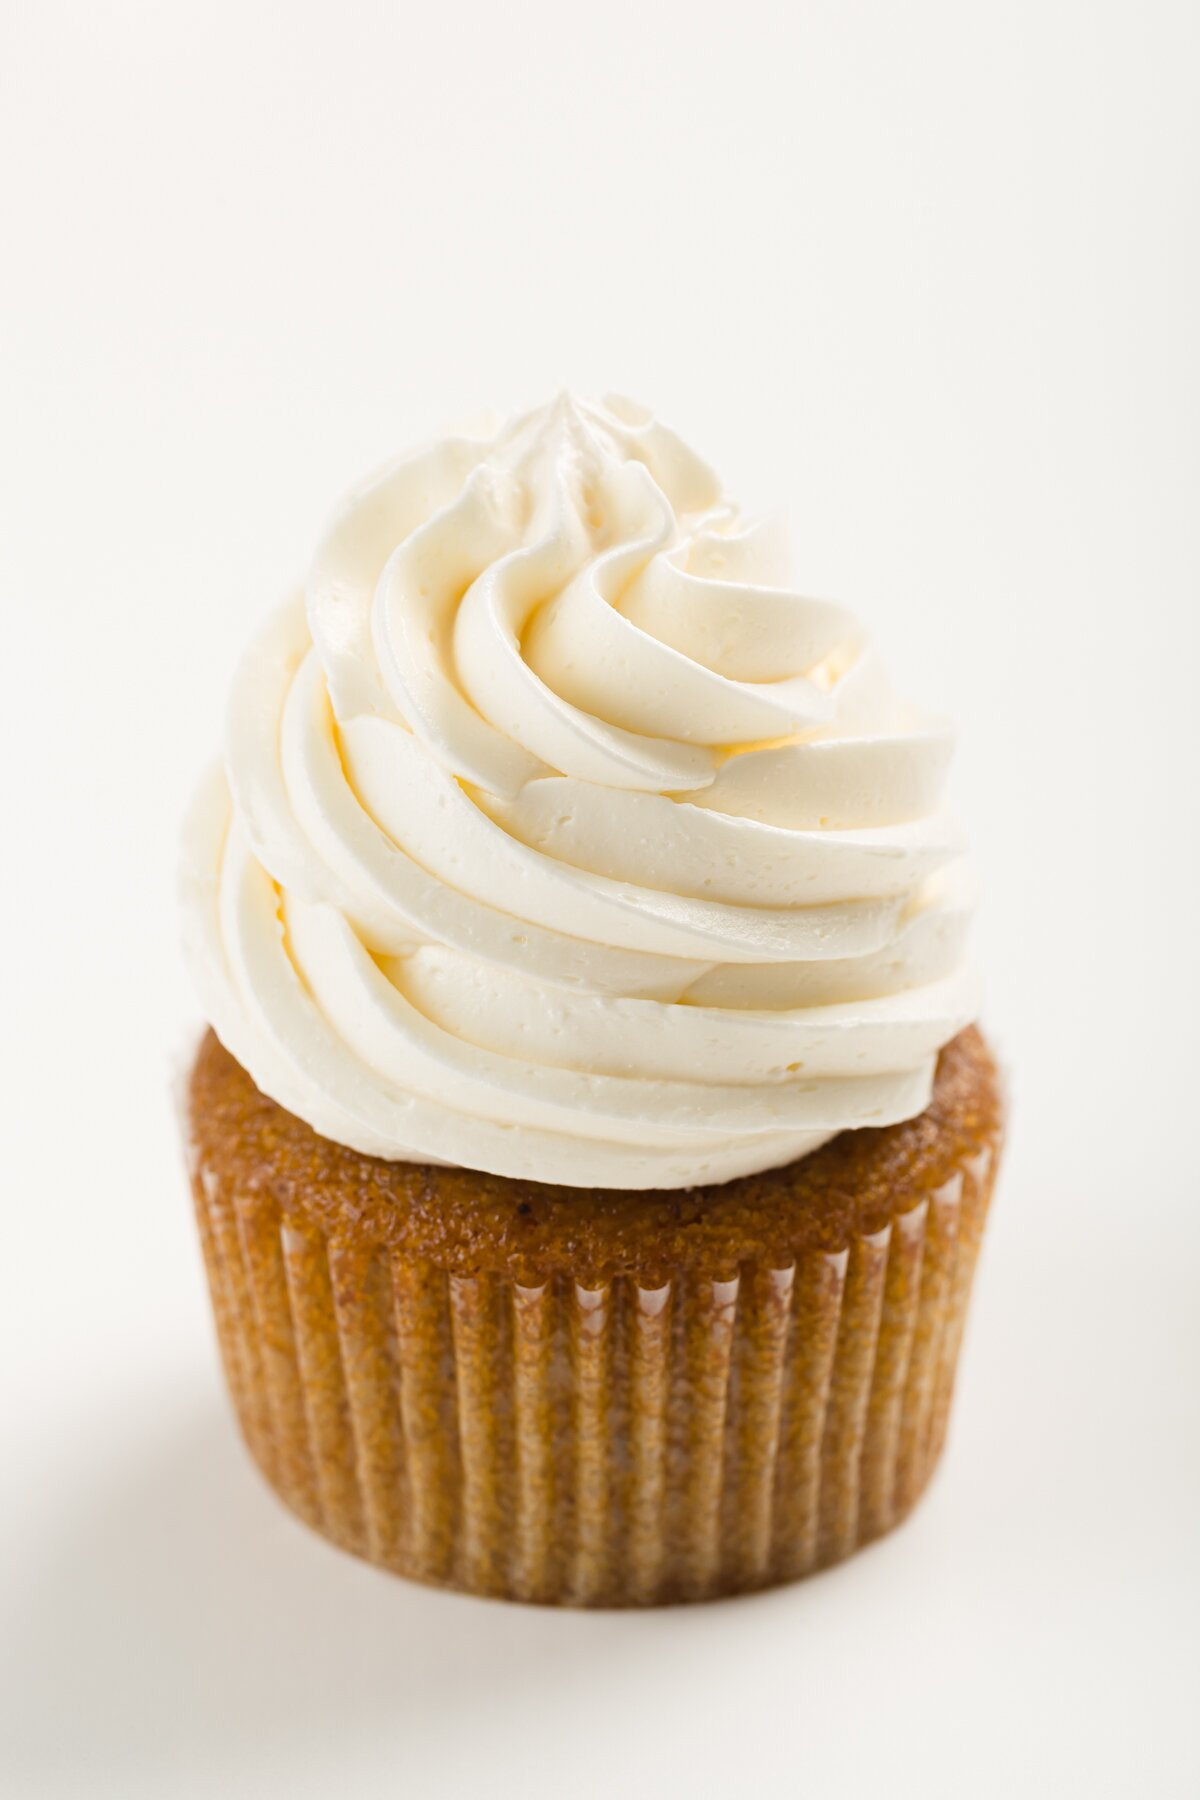 tight shot of a cupcake frosted with Italian meringue buttercream frosting